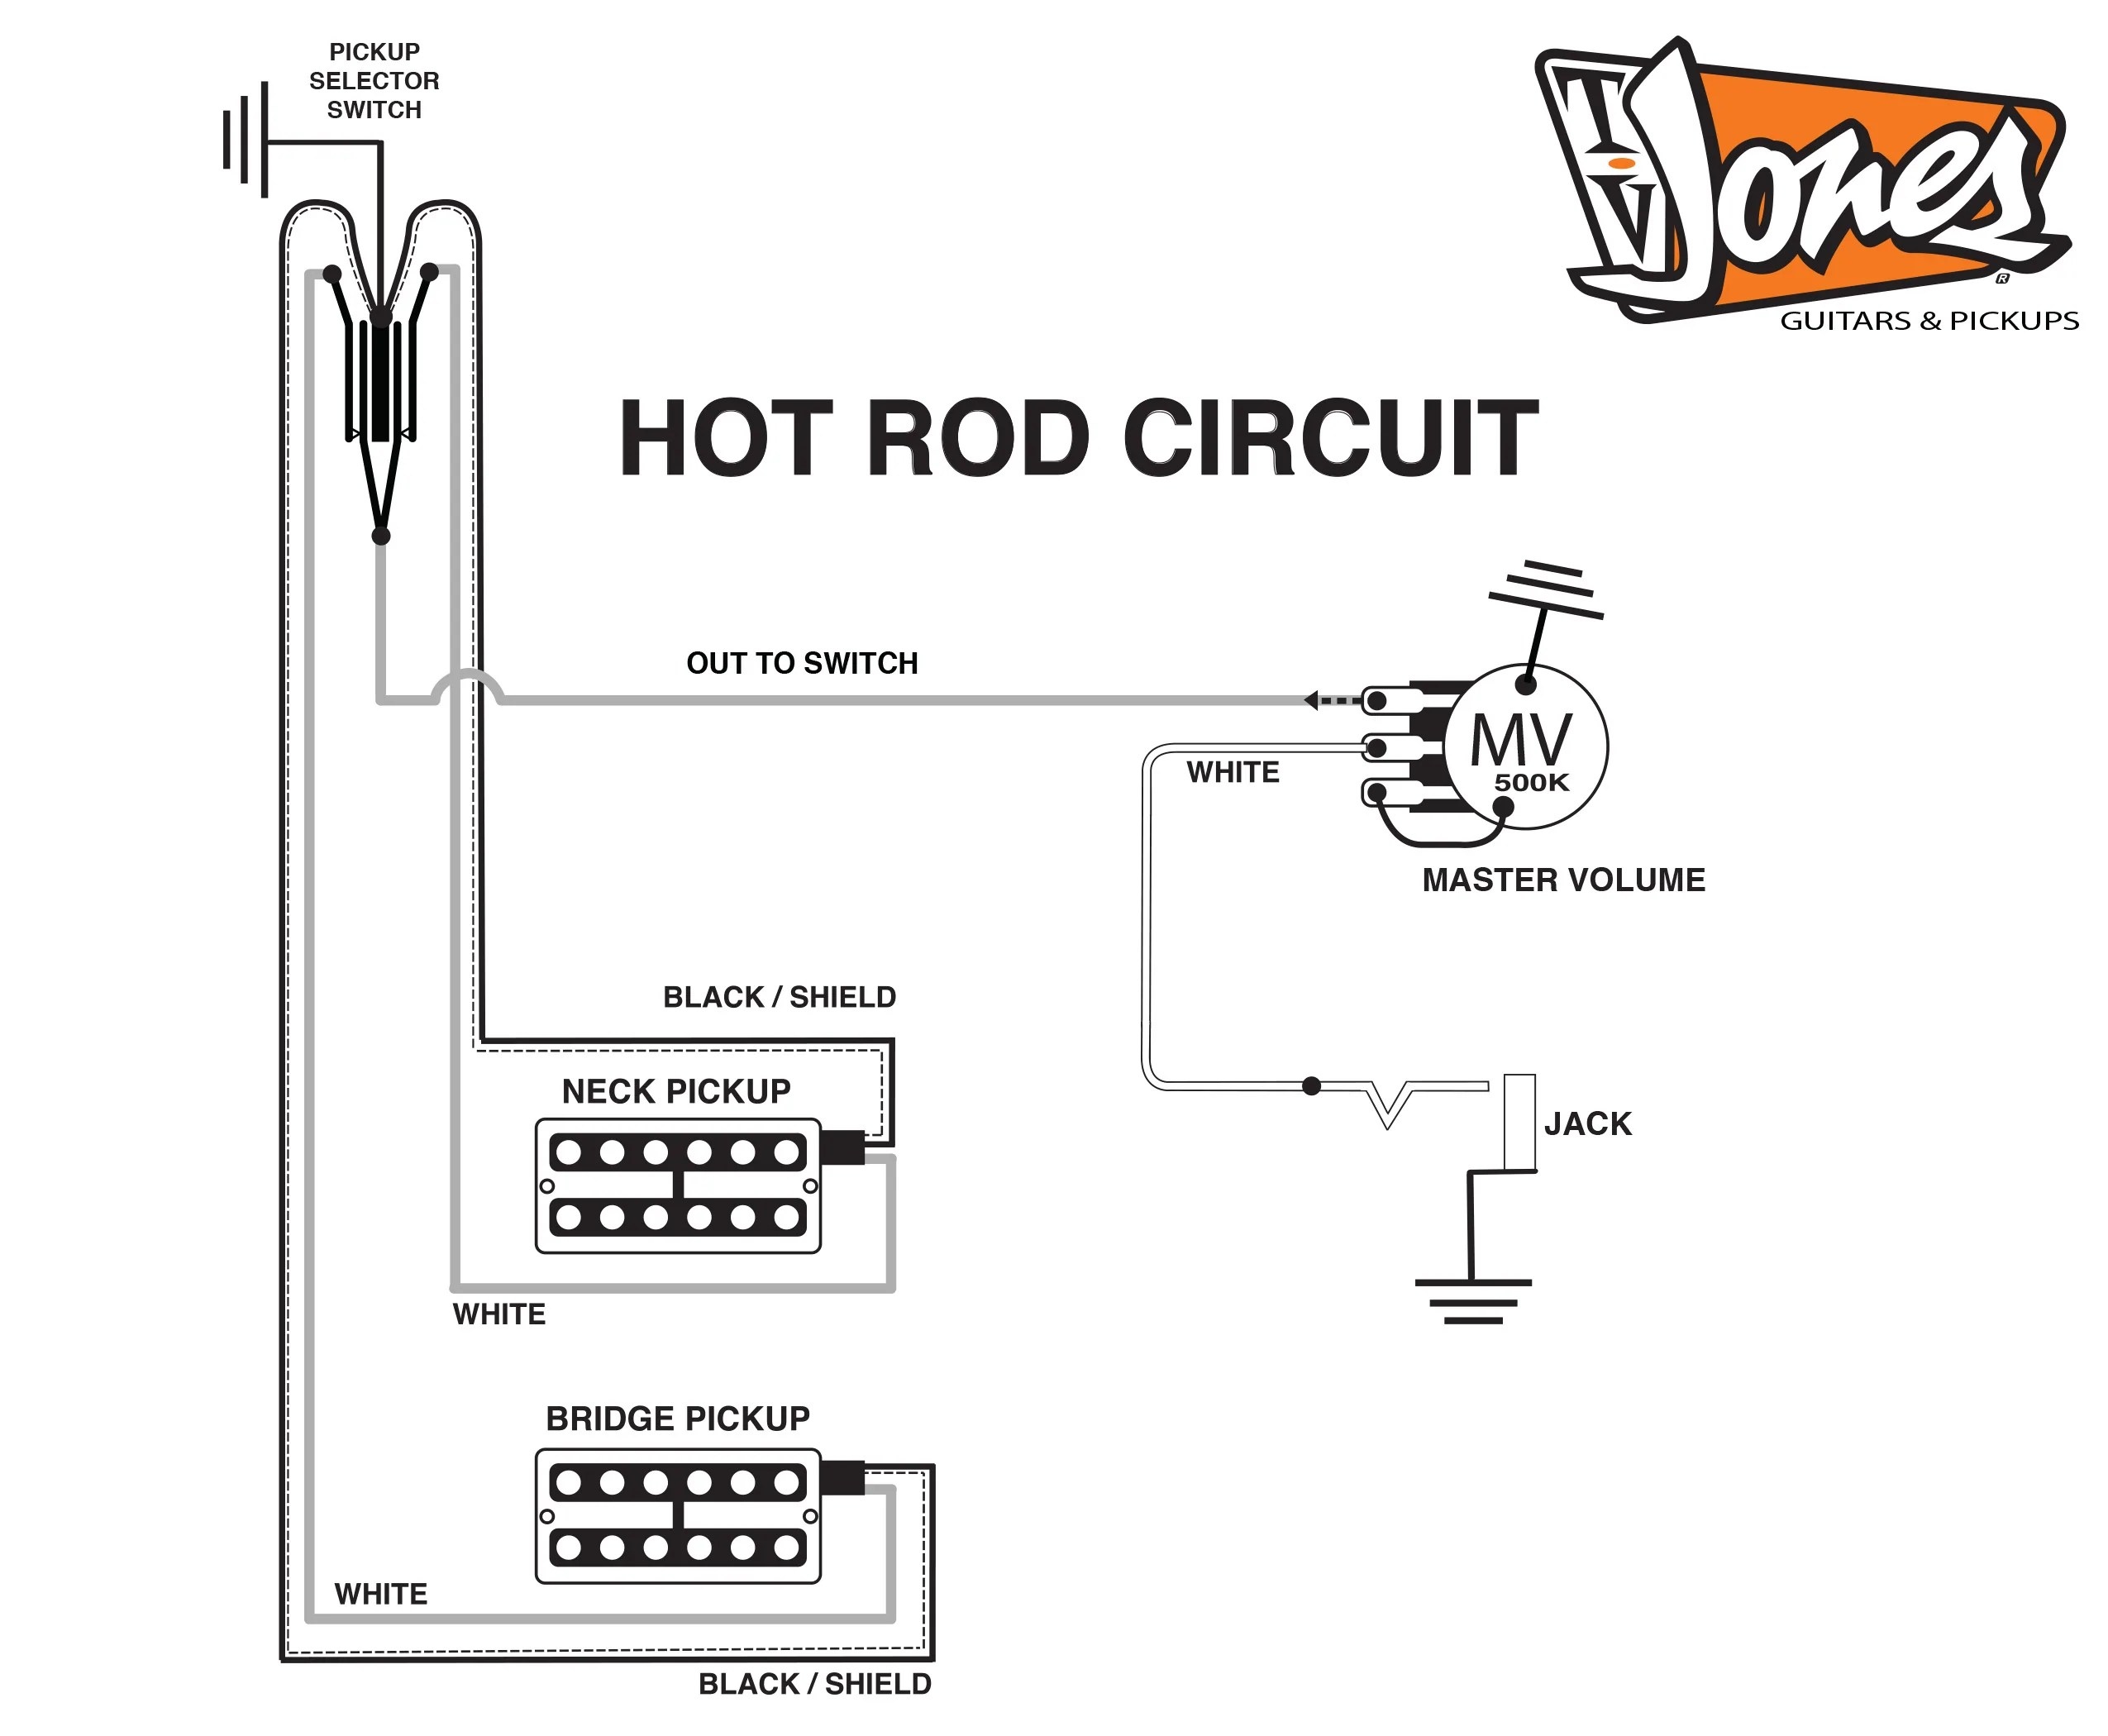 hot rod wiring diagram e36 mud switch broke convert to general